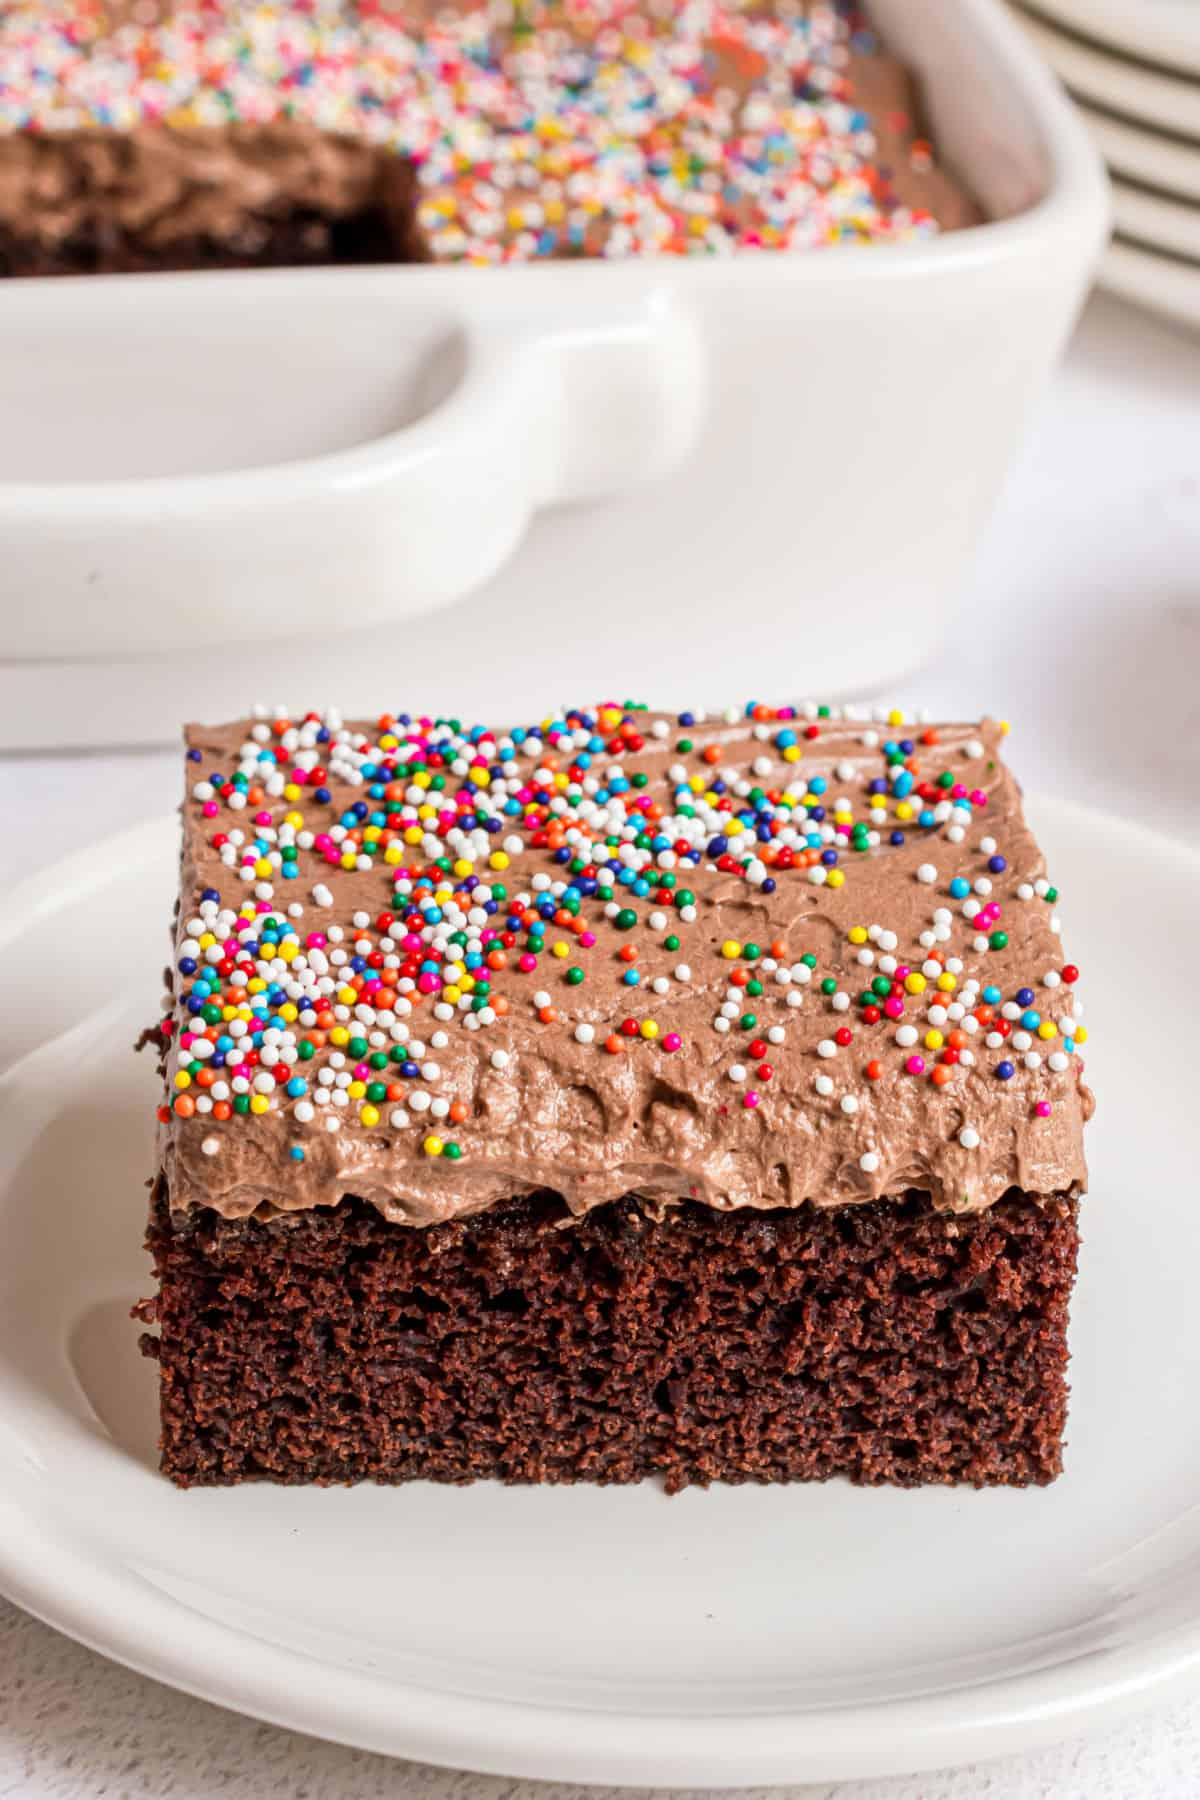 Easy chocolate cake slice on a white plate with sprinkles.